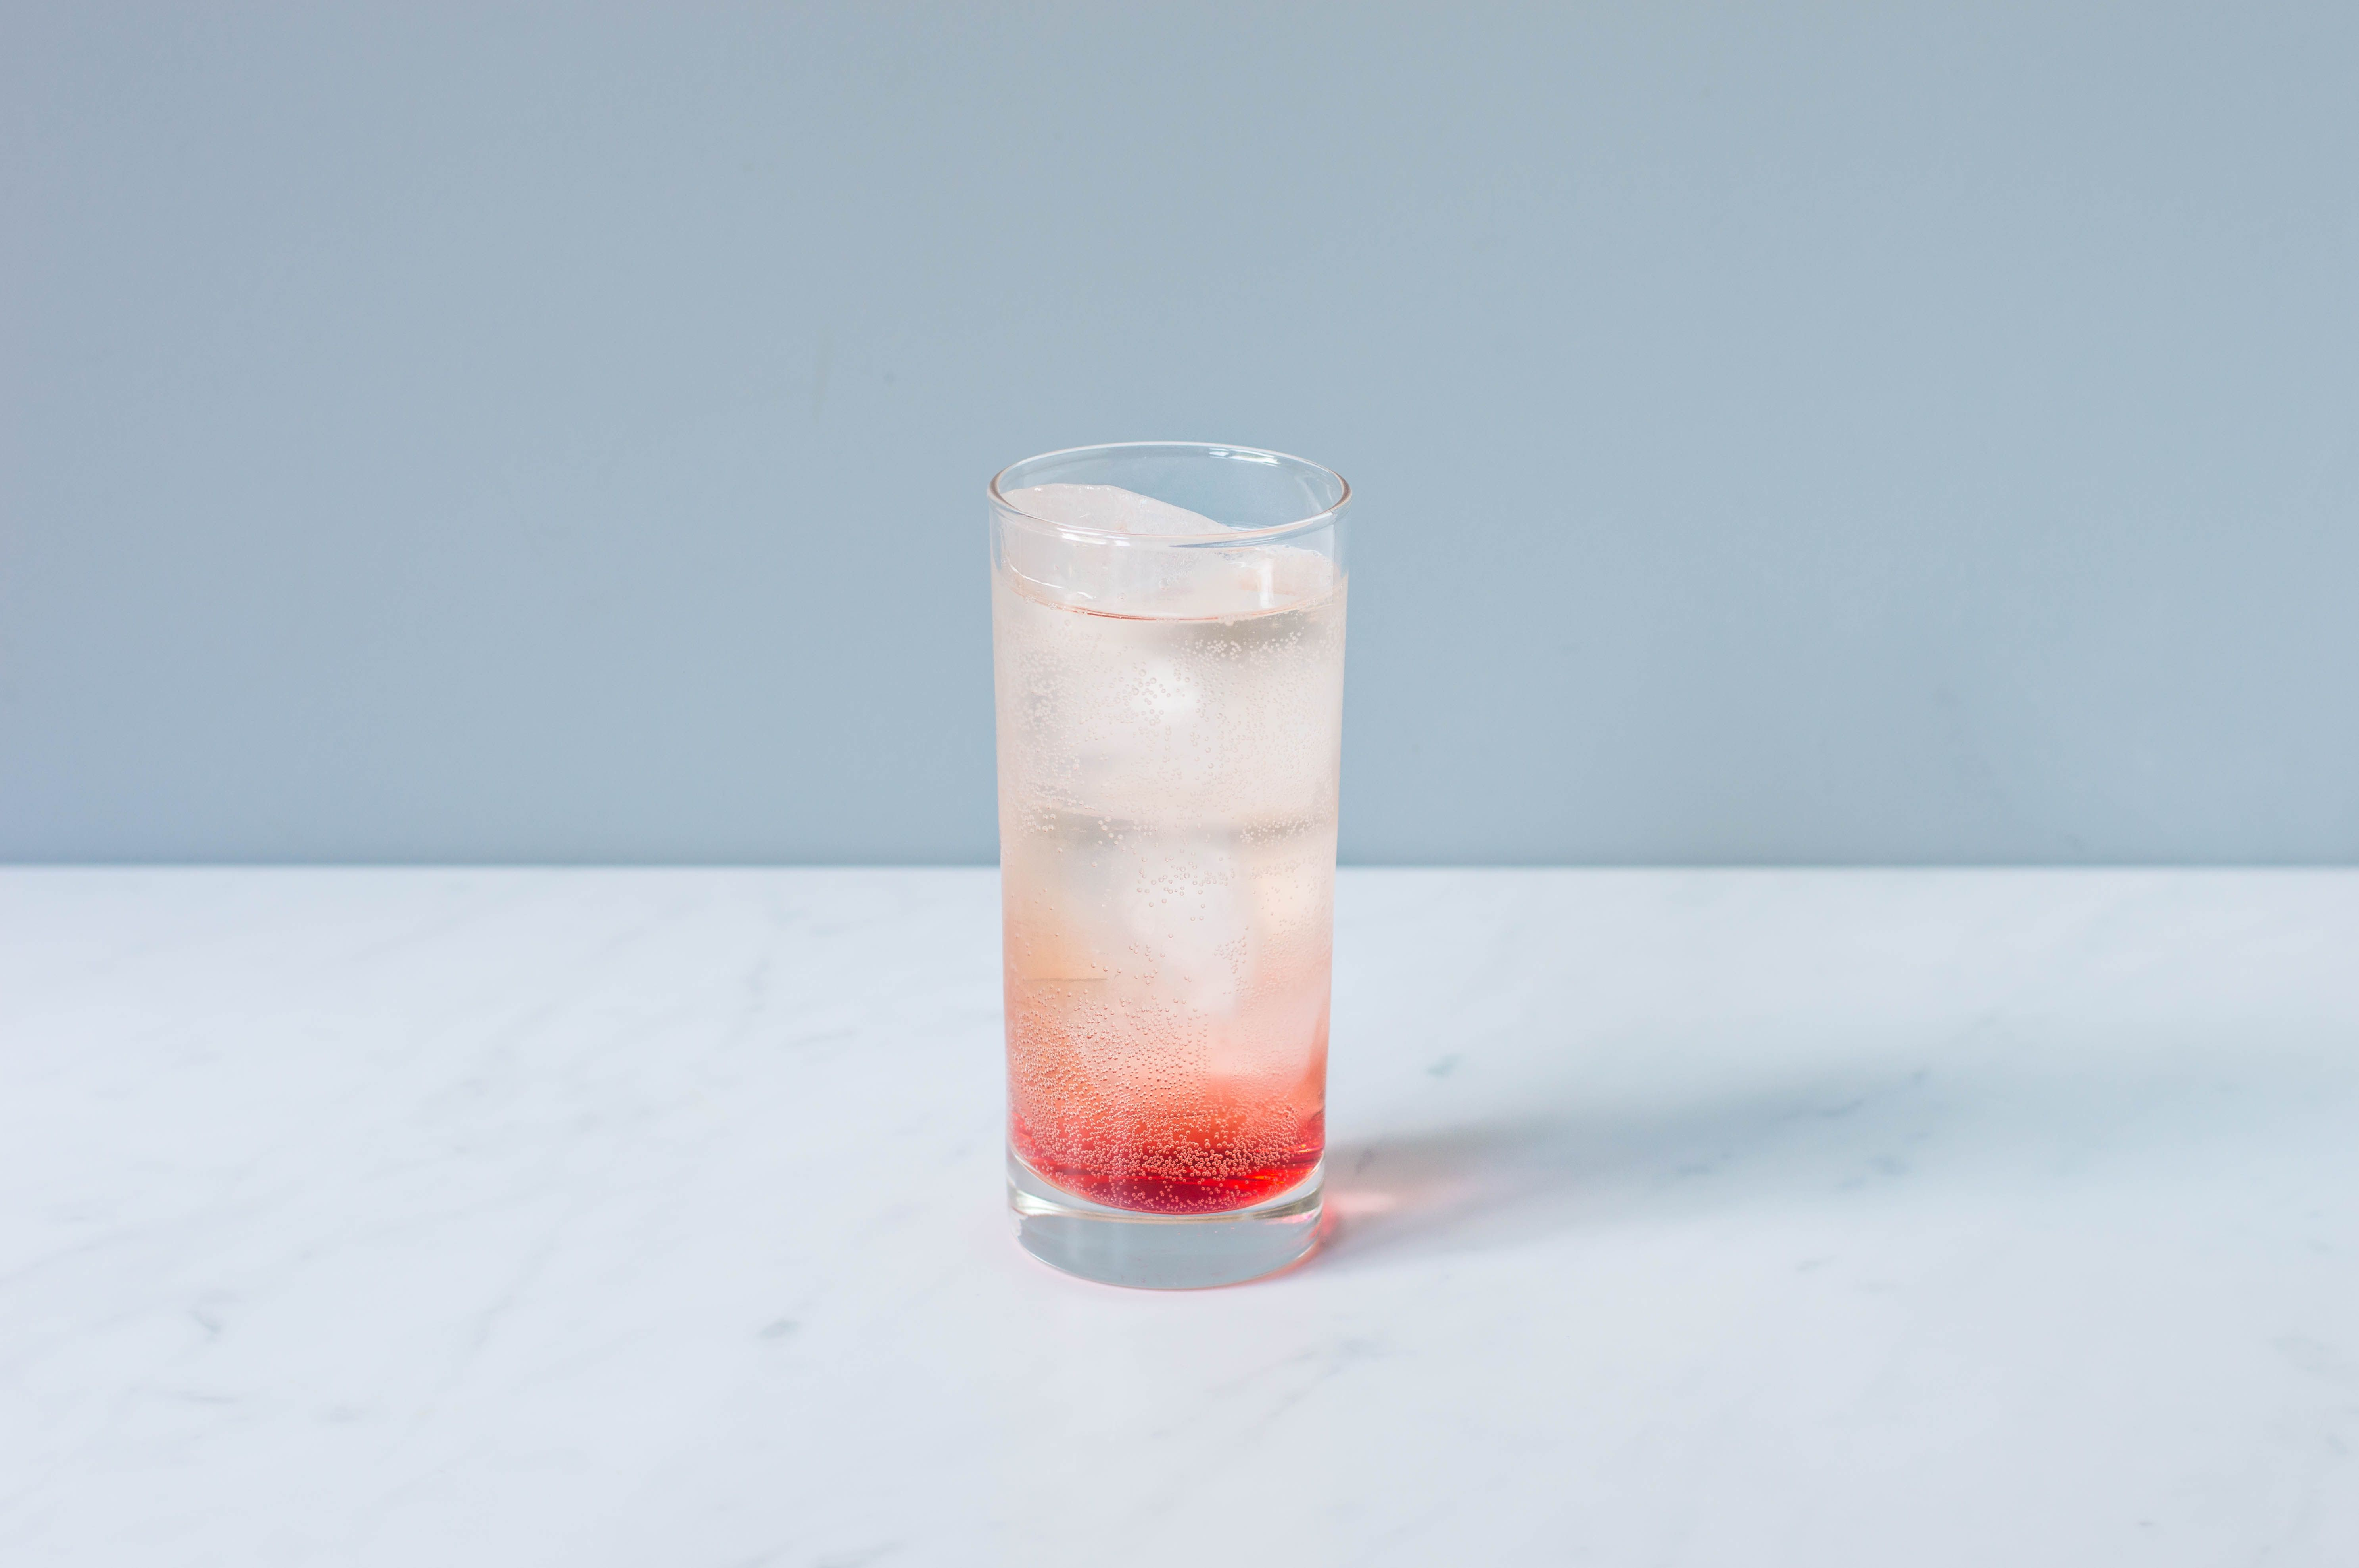 Top with equal parts lemon-lime soda and ginger ale